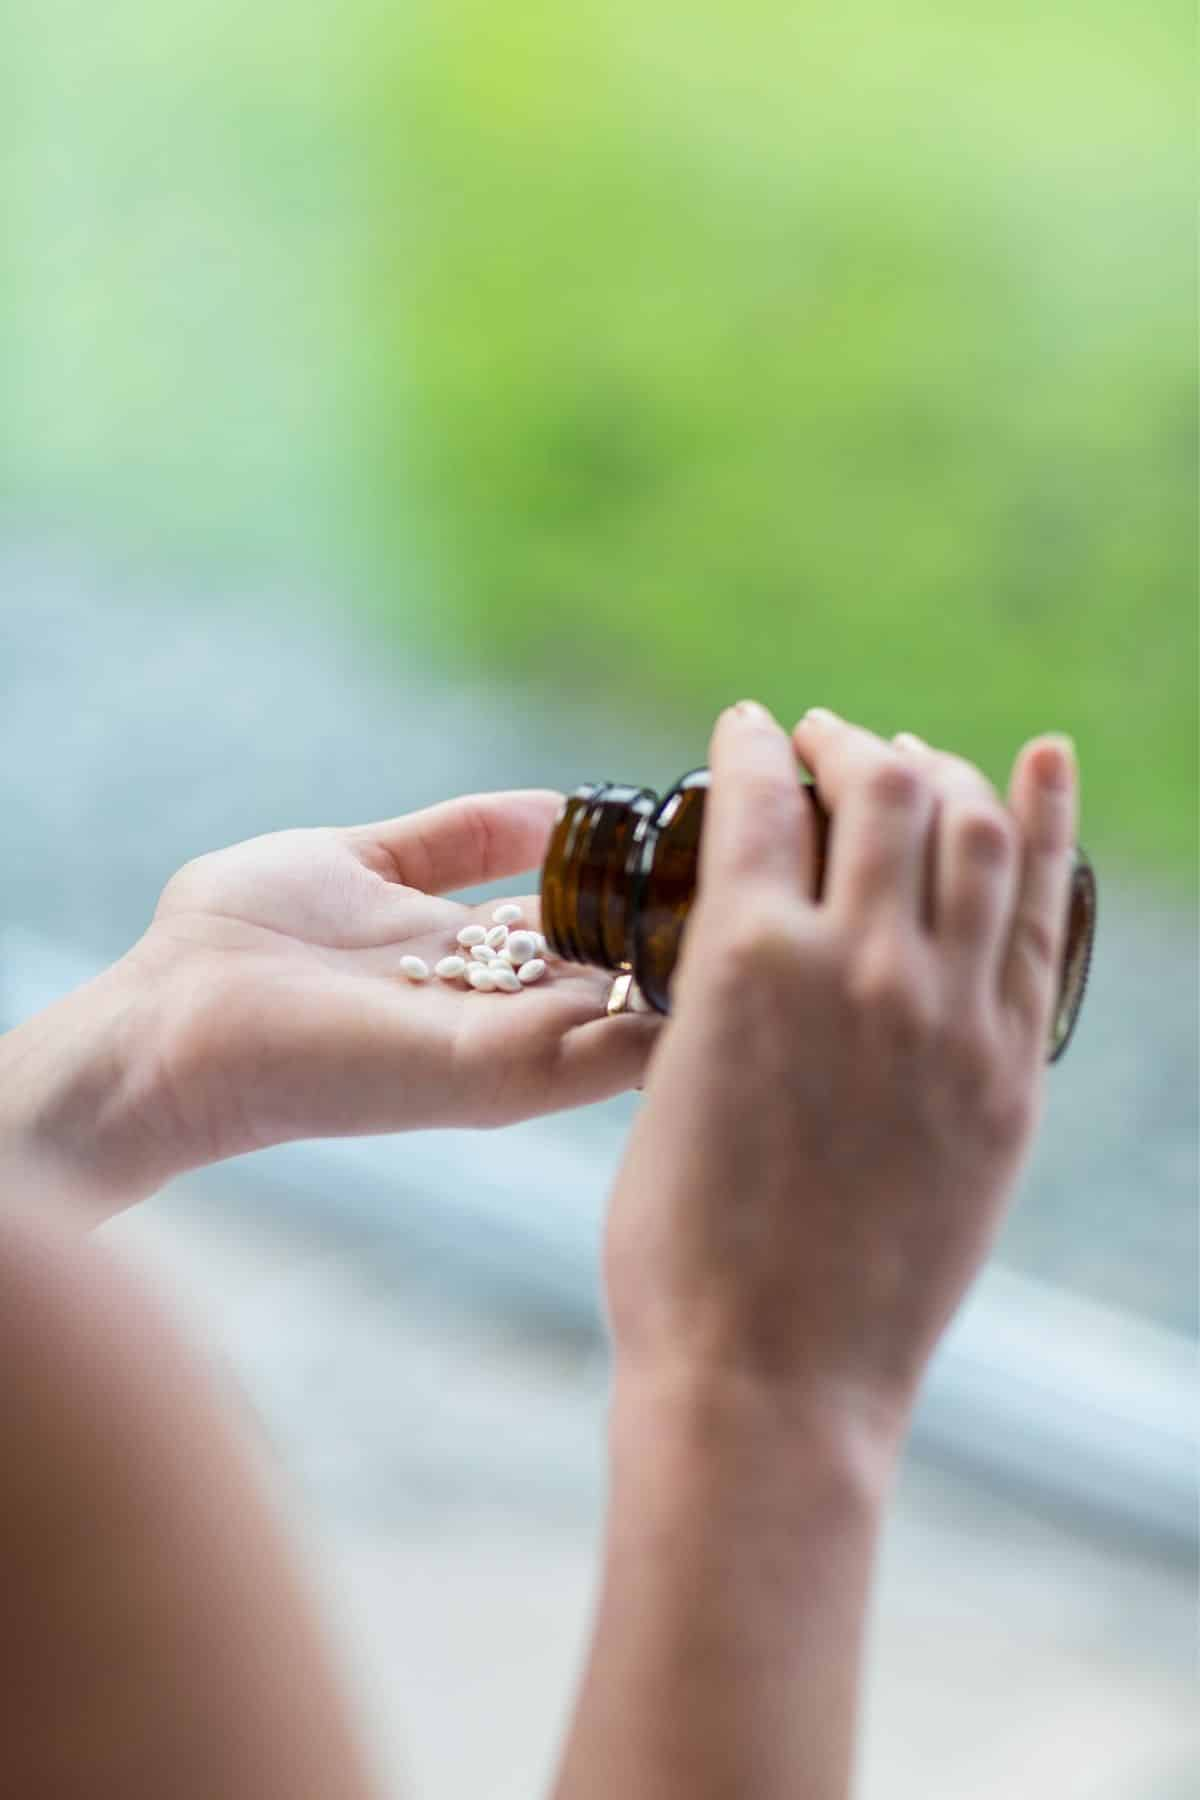 woman pouring pills into her hand